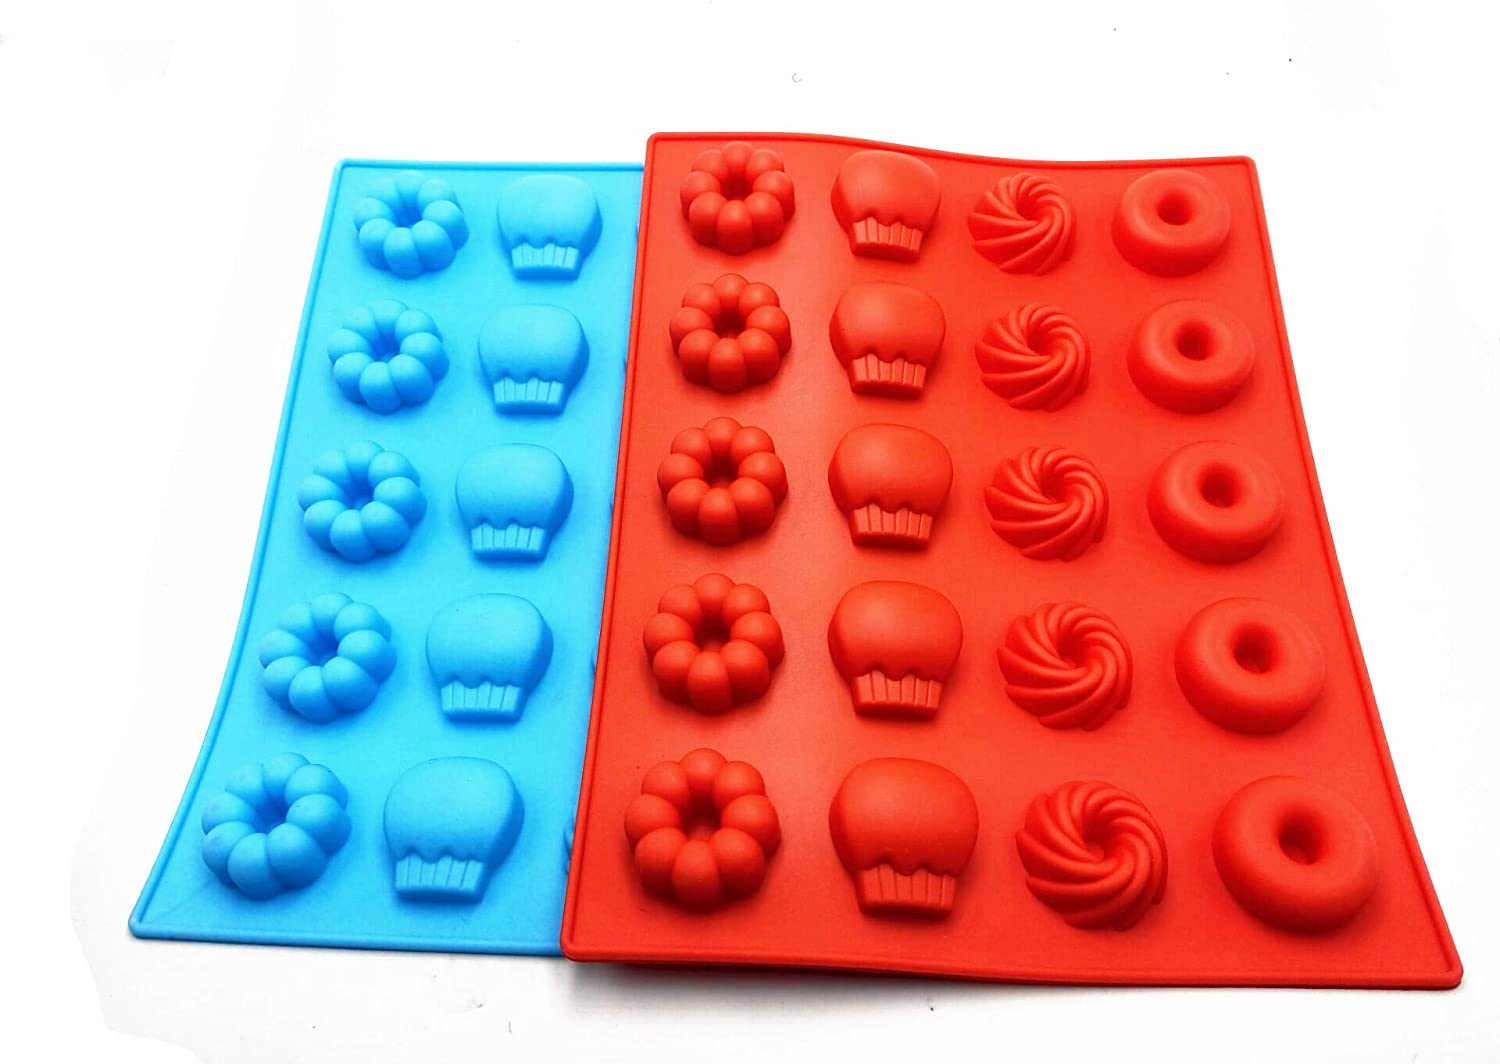 BLS Edible silica gel GummyBear Candy Molds Silicone - Chocolate Gummy Molds with 2 Droppers Nonstick Food Grade Silicone Pack of 2 (Red and blue big 20)